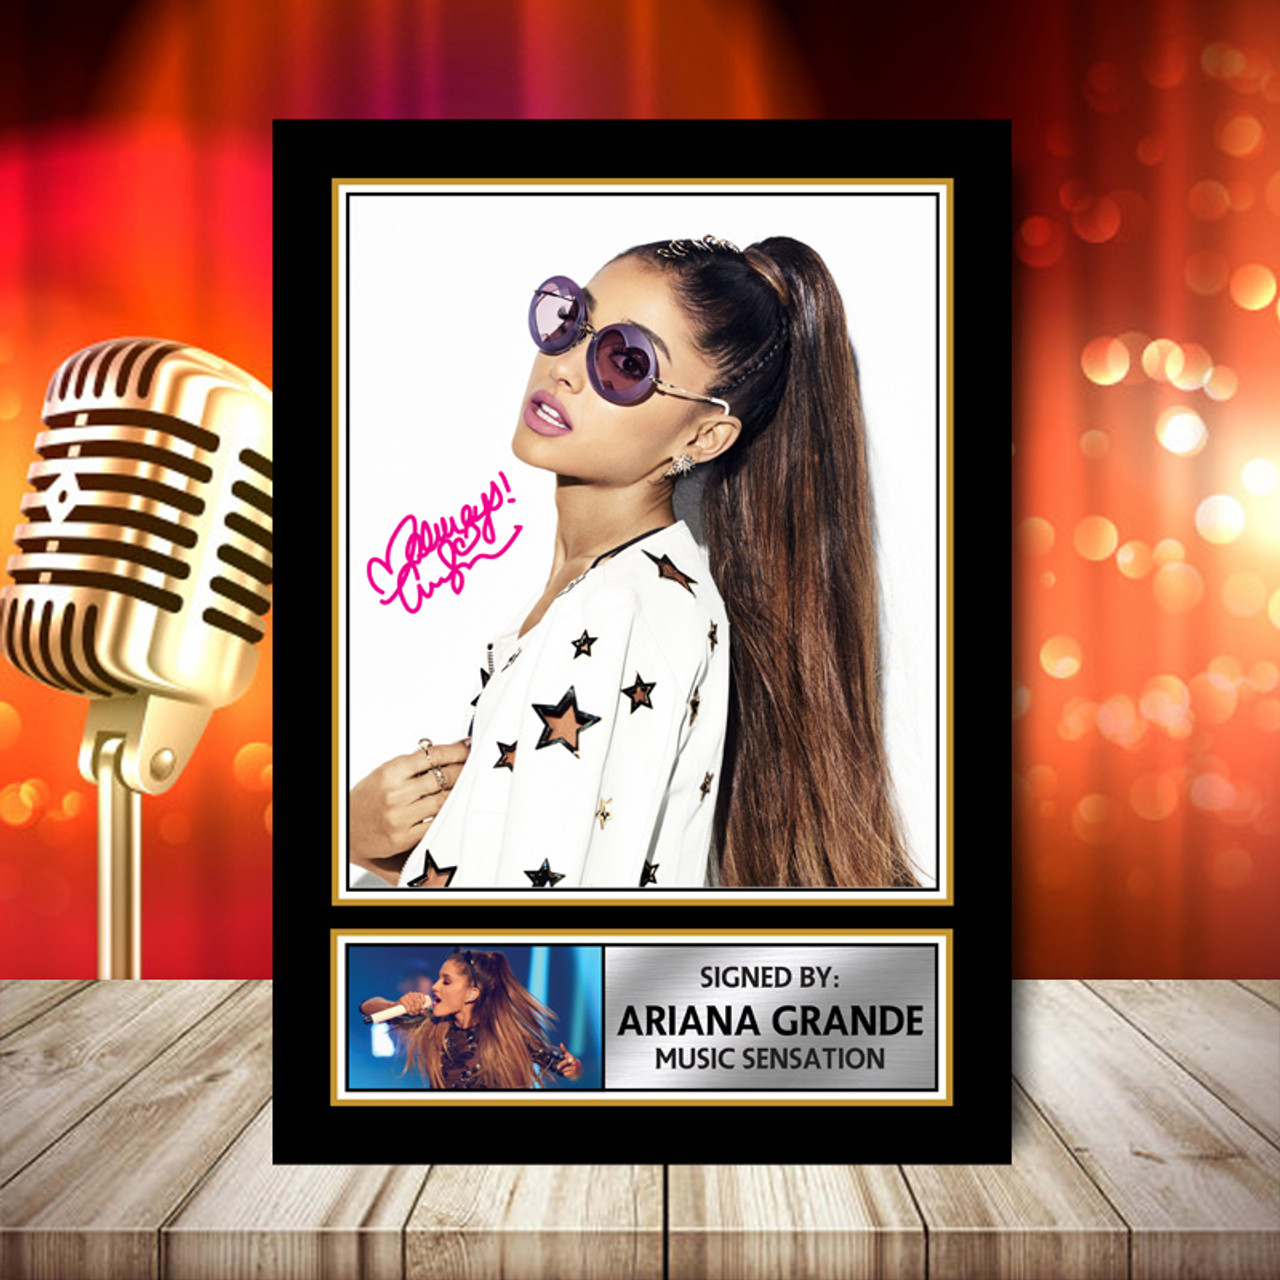 ariana grande signed autographed music star print